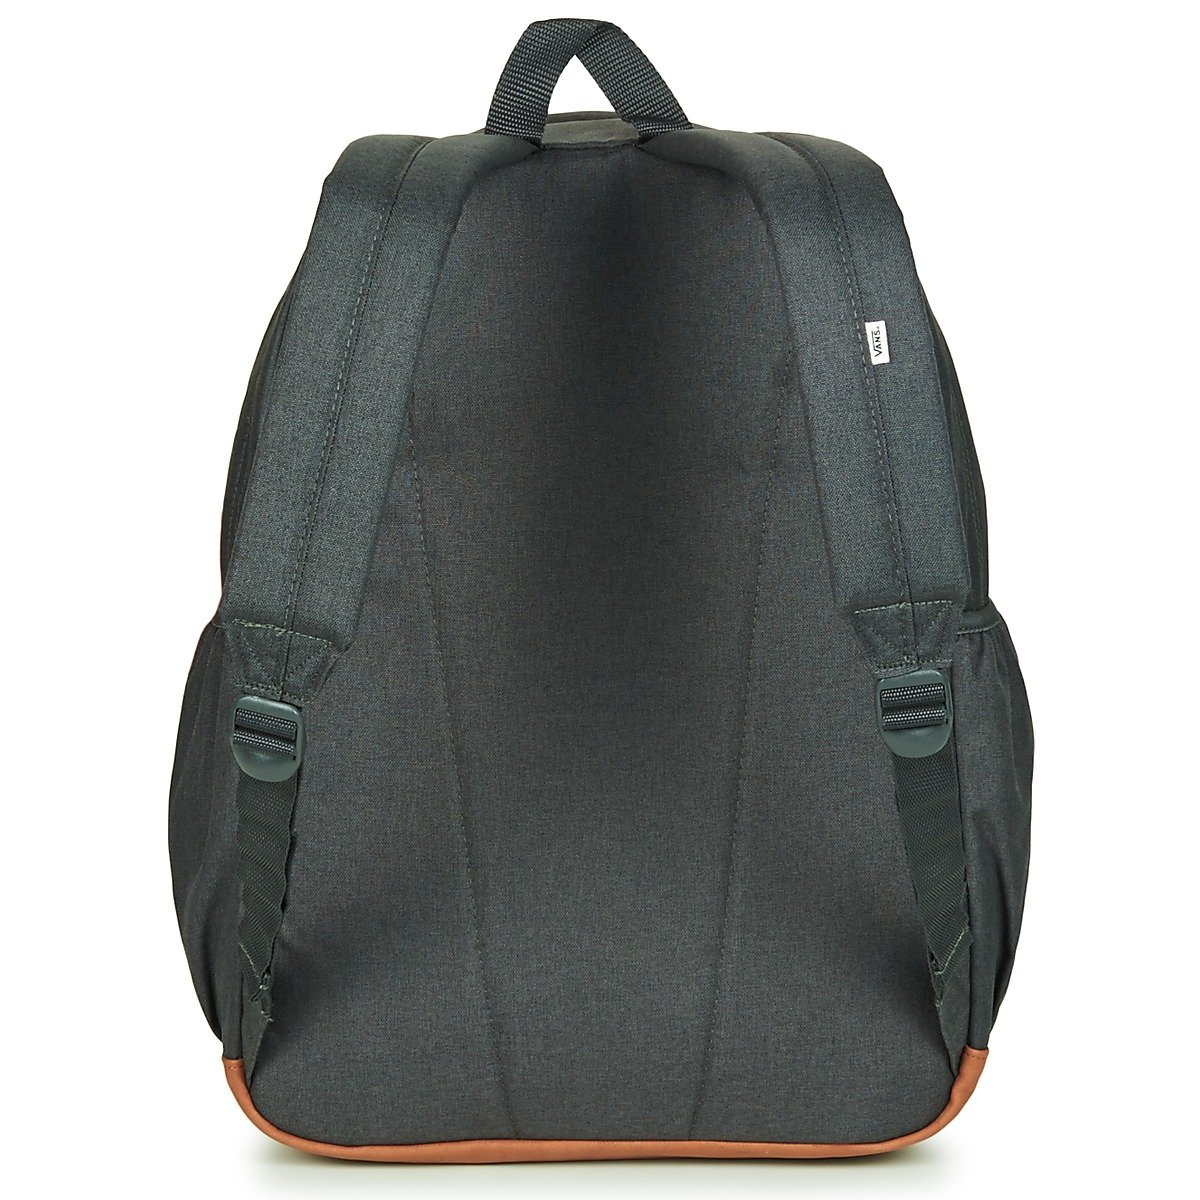 a62749314c0 Vans Realm Plus Backpack -Fall 2018-(VN0A34GL1O71) - Asphalt - One Size   Amazon.co.uk  Clothing